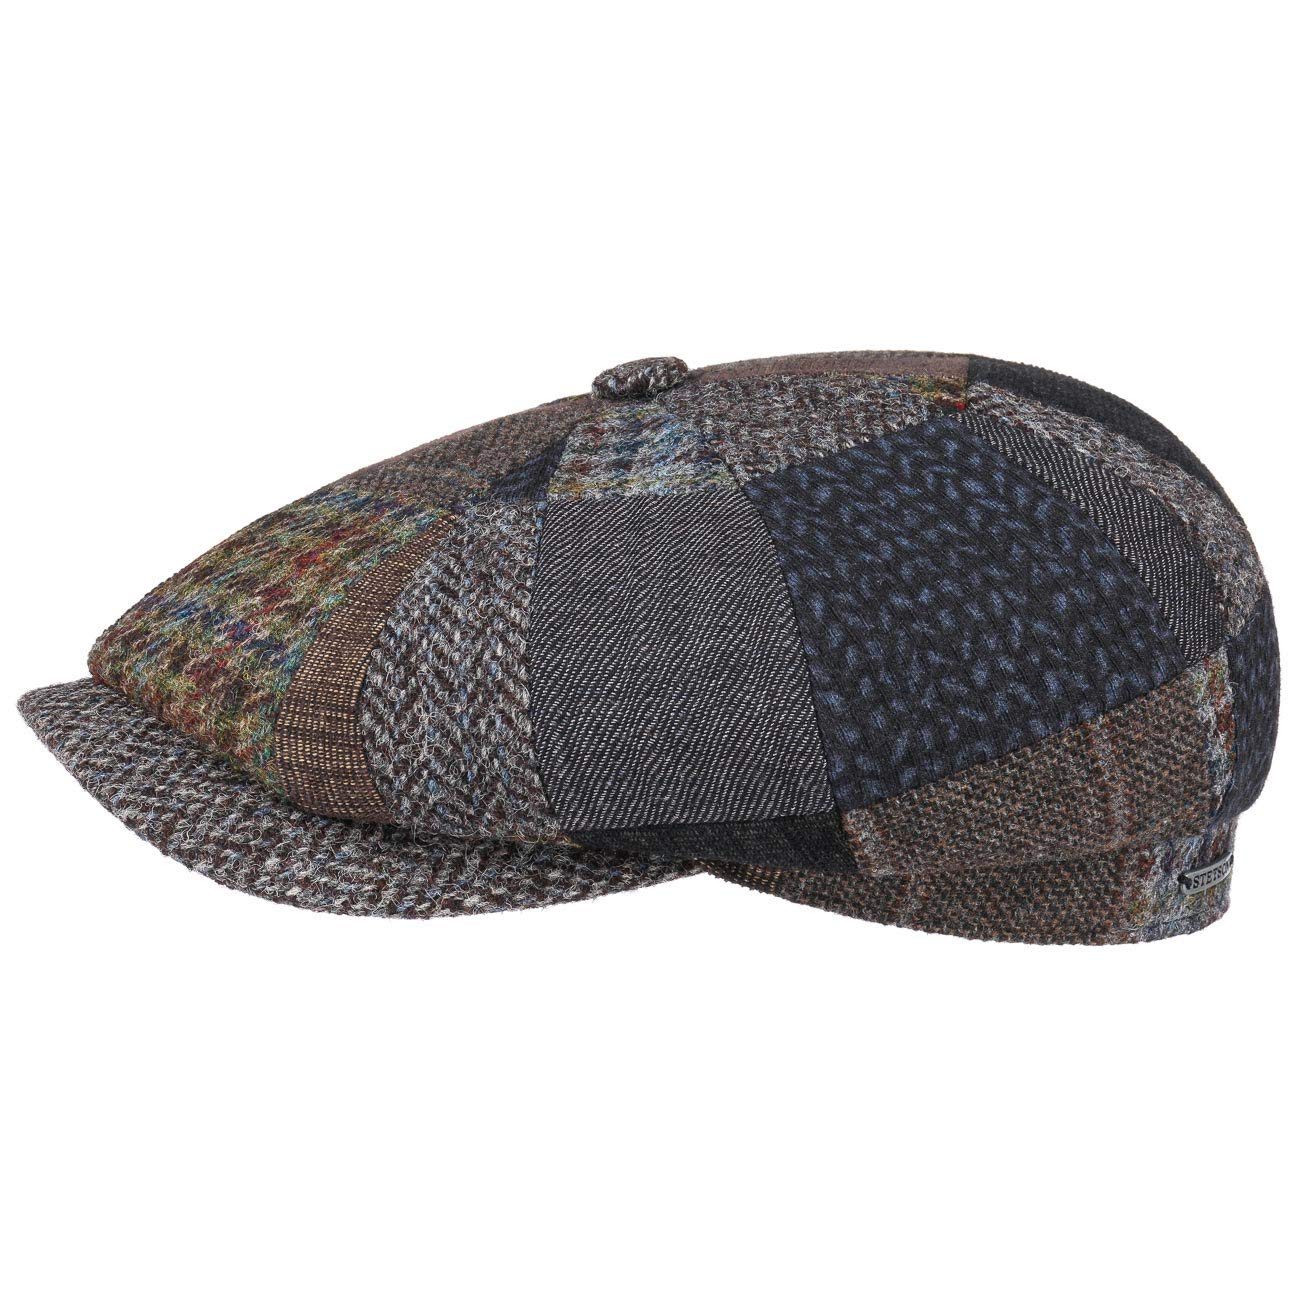 b58c09d5bf3 Stetson Hatteras Handmade Patchwork Flat Cap Wool Ivy hat  Amazon.co.uk   Clothing